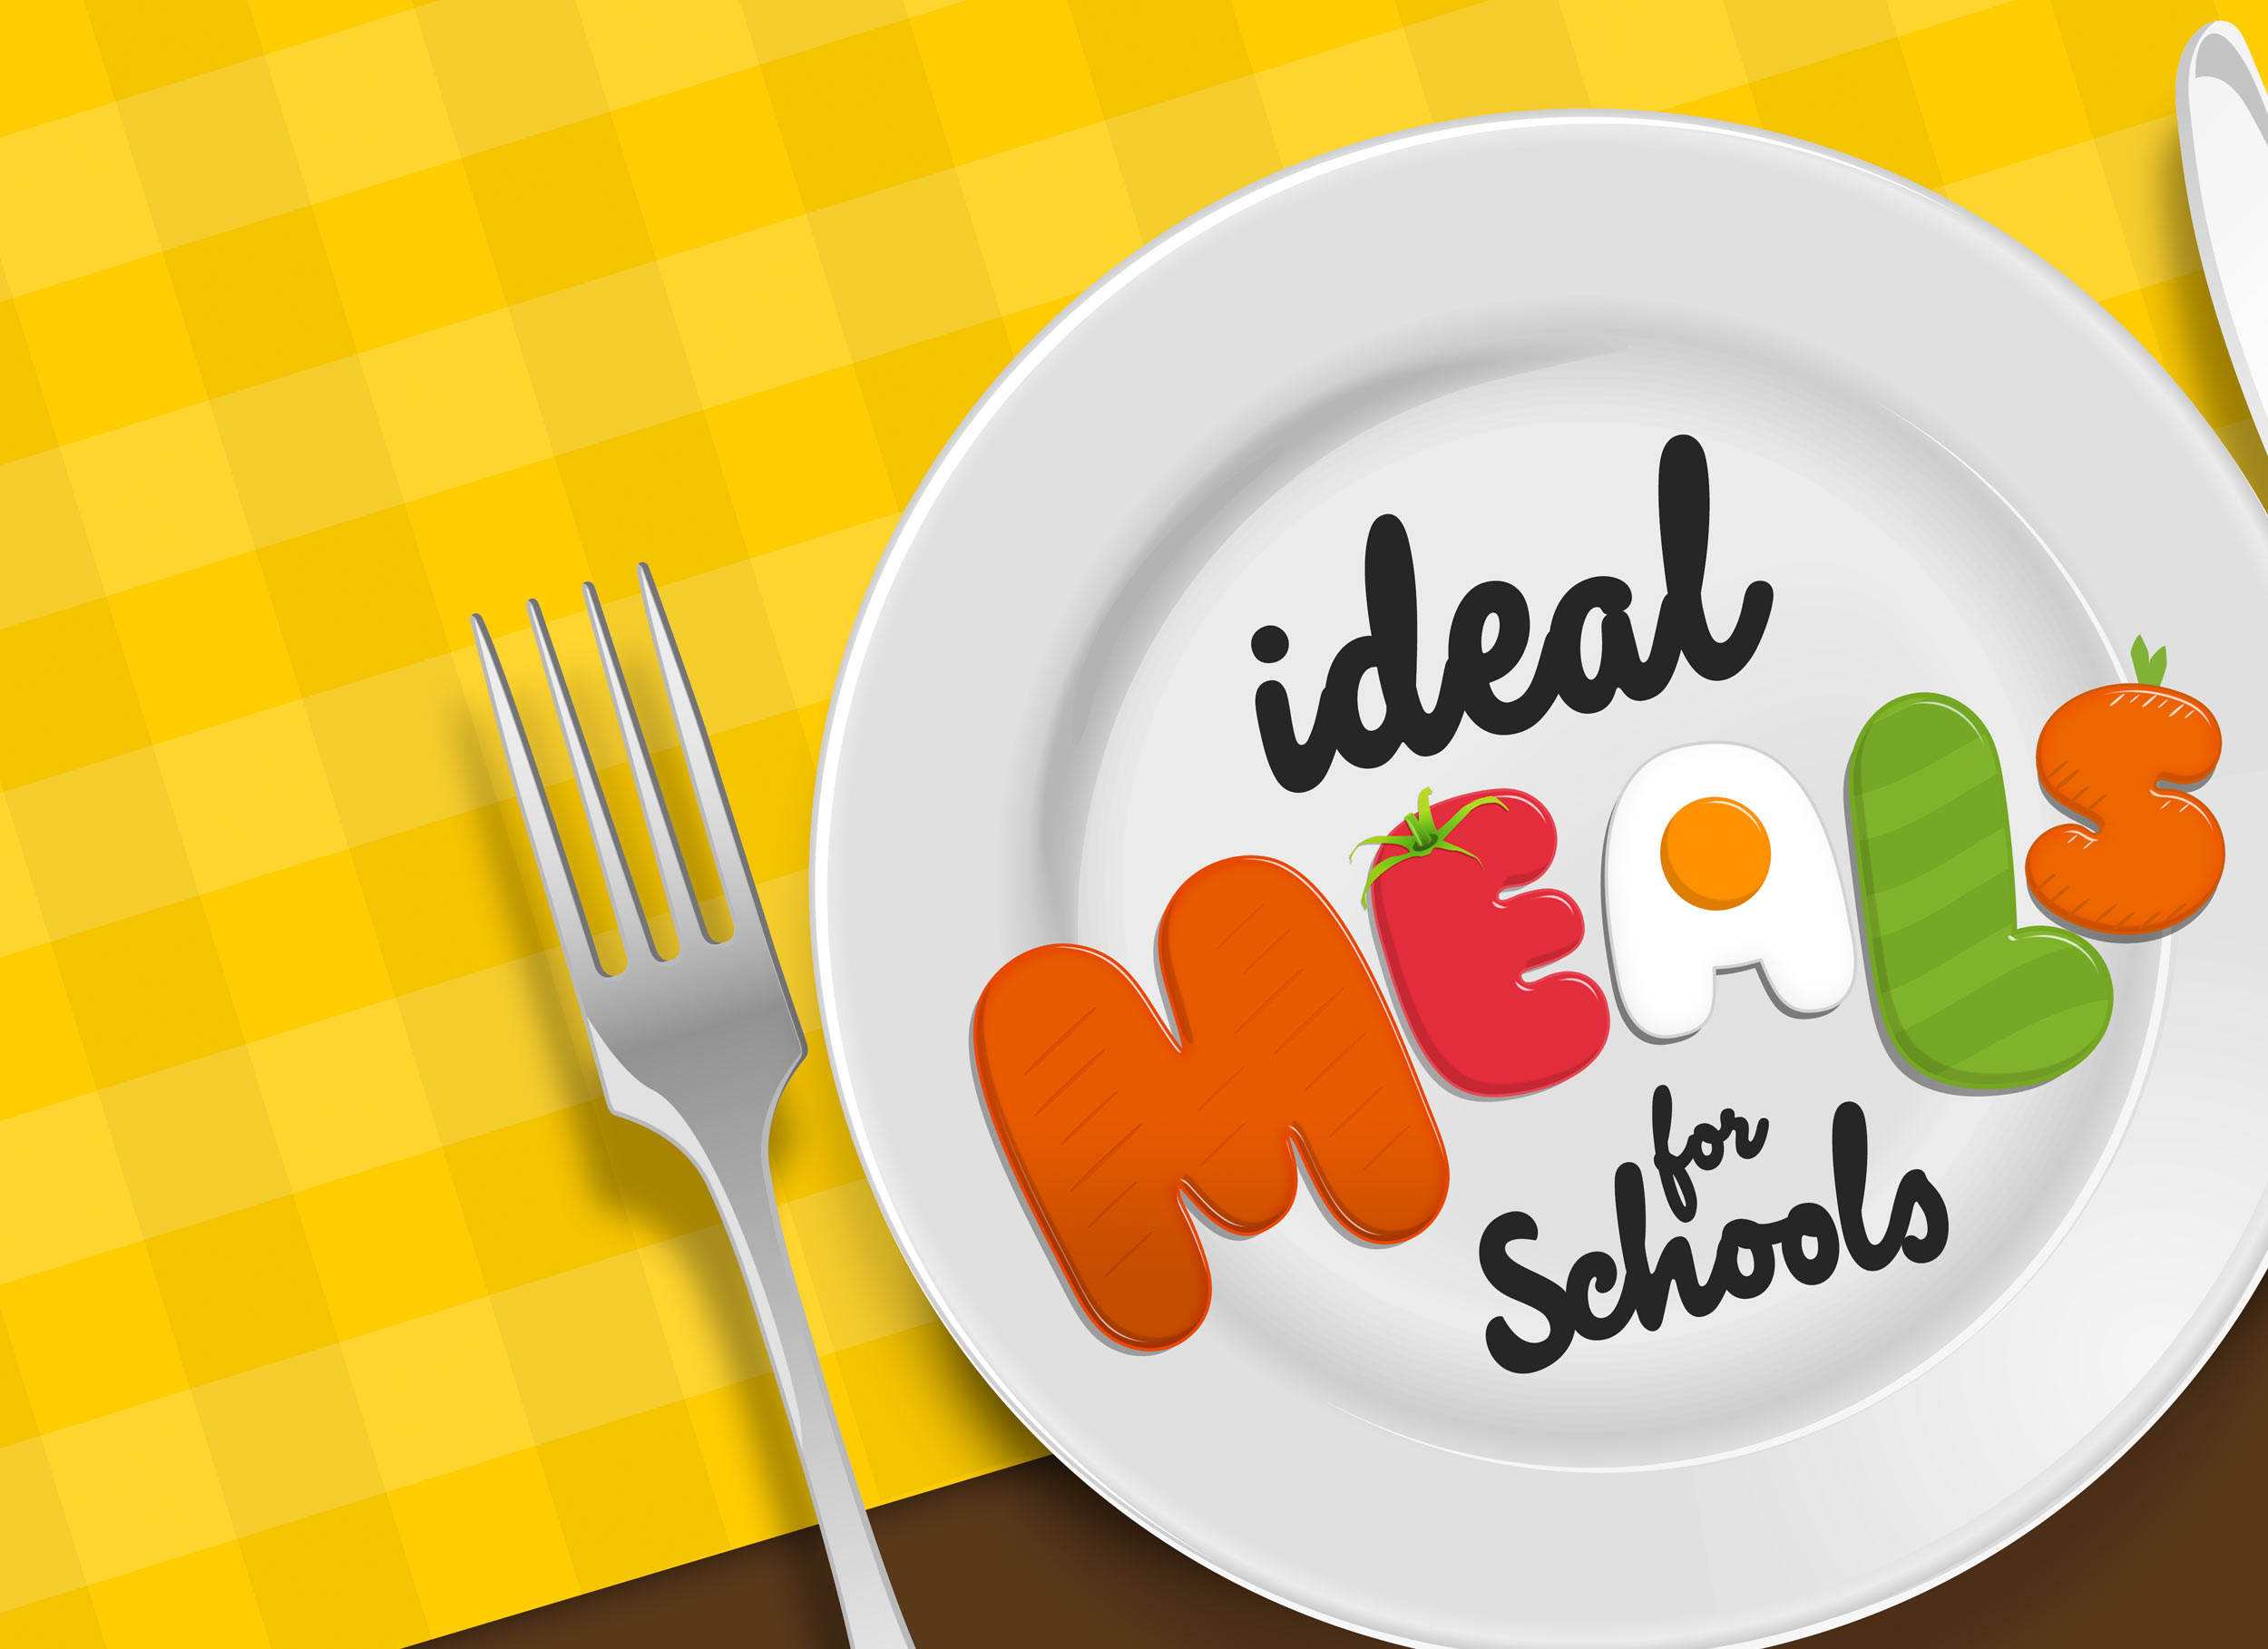 Why Choose Ideal to Provide Your Hot School Meals?